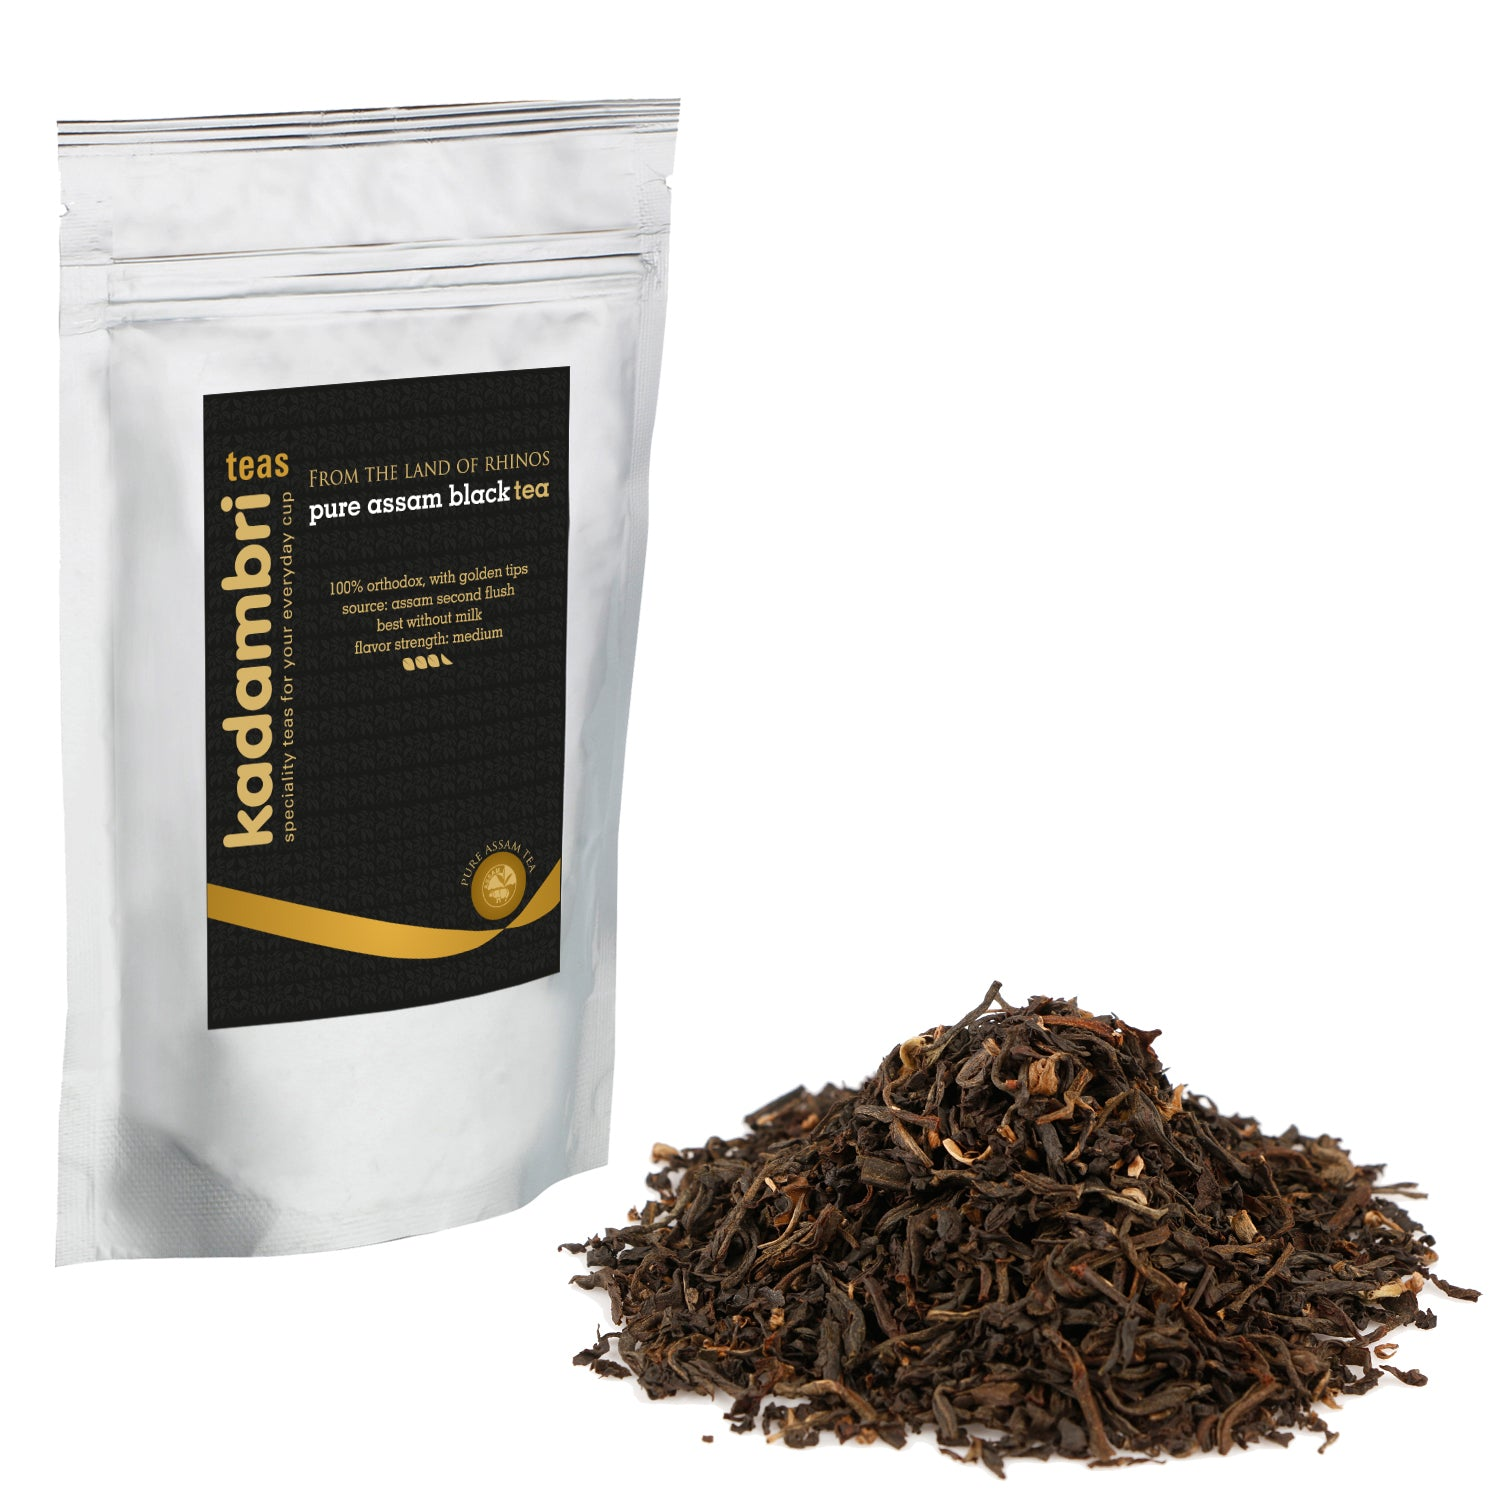 holi tea gifts from kadambri teas - premium loose leaf teas